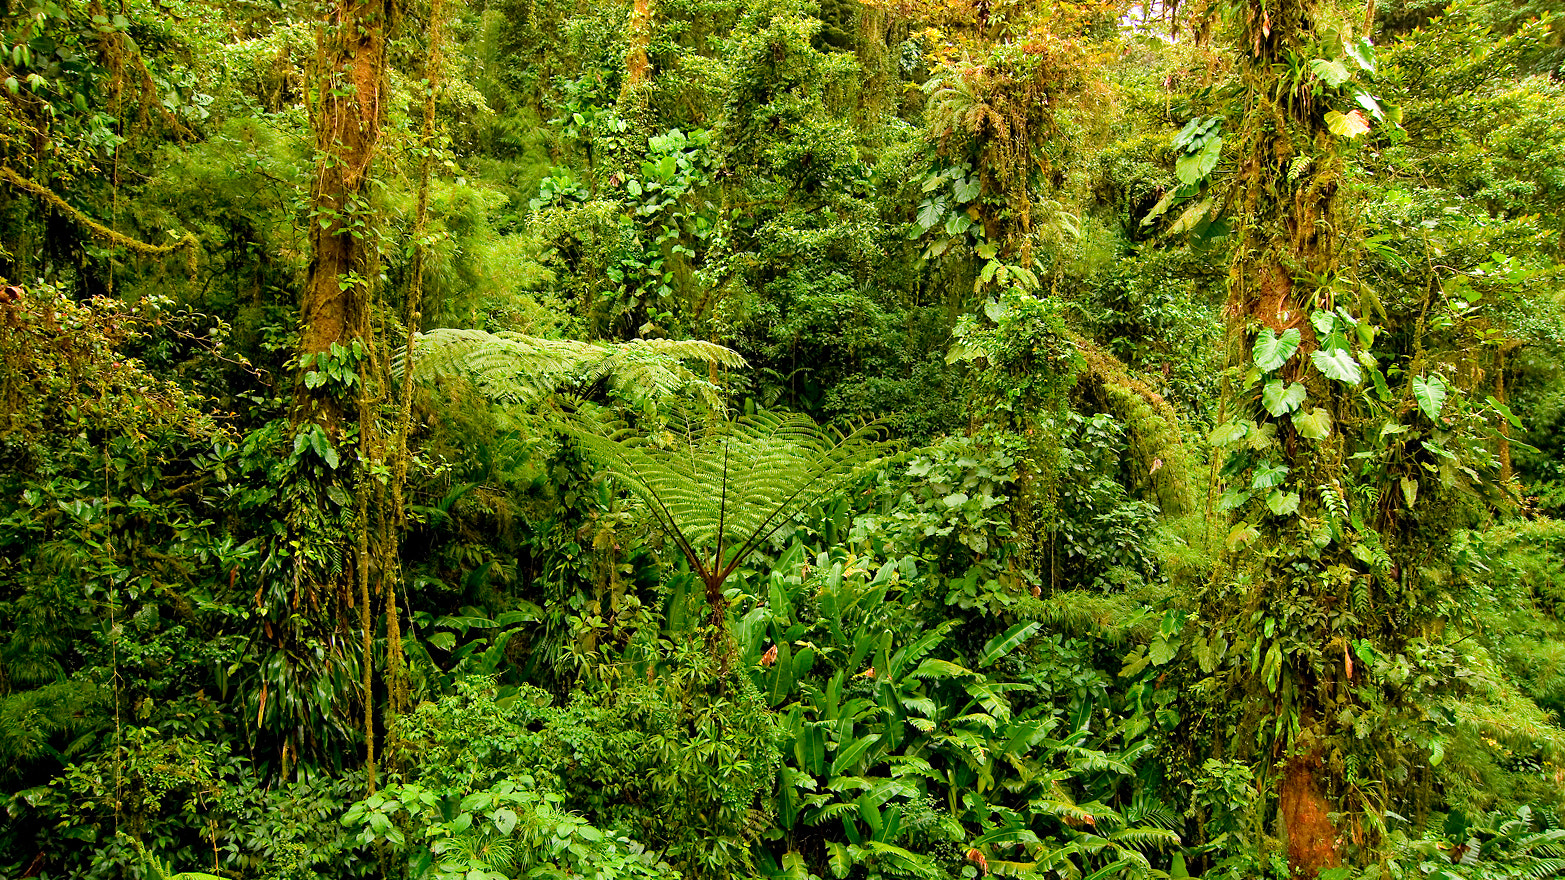 Photograph Cloudforest by Spencer Robertson on 500px